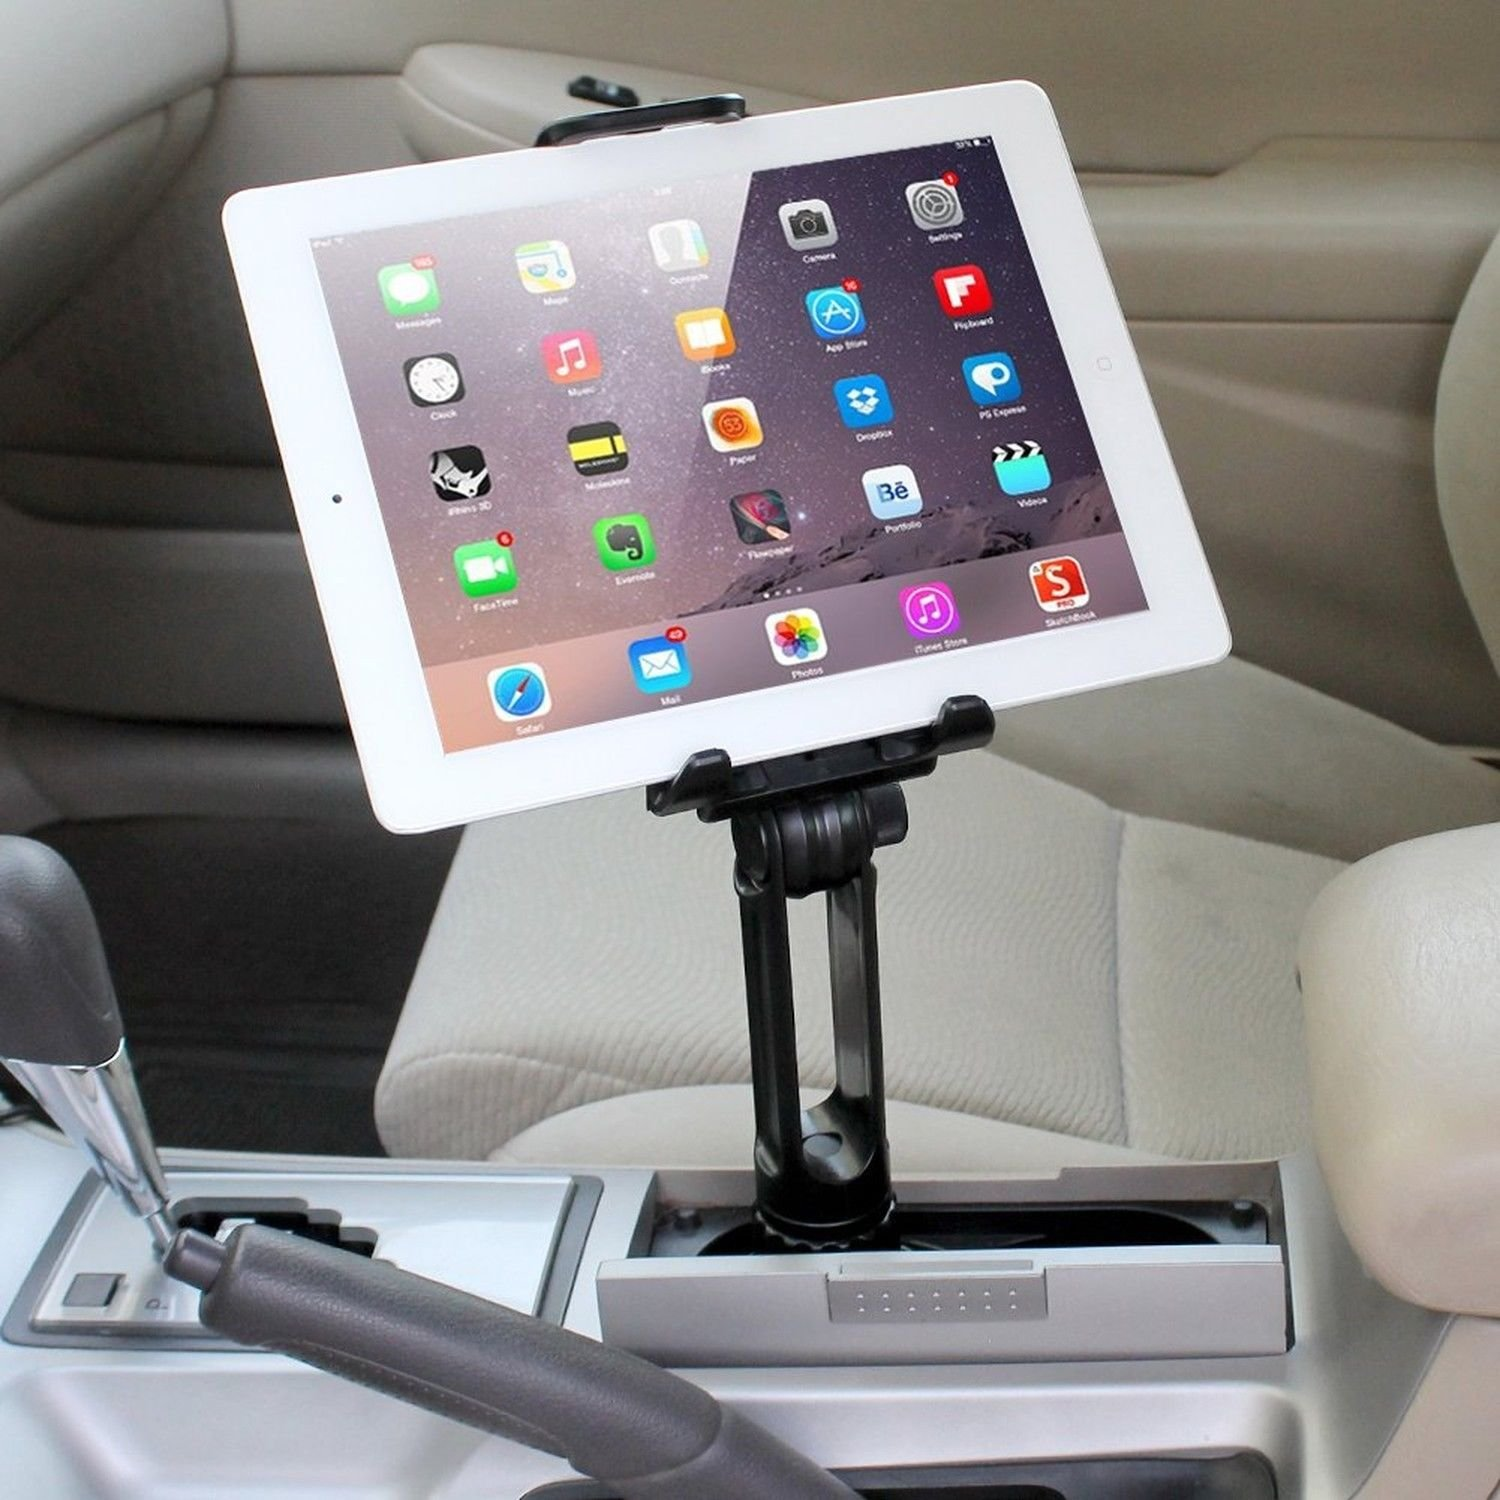 Cup Mount Holder iKross 2-in-1 Tablet and Smartphone Adjustable Swing Cradle with Extended Cup Car Mount Holder Kit for Apple iPad iPhone Samsung Asus Tablet Smartphone and Uber Lyft Driver - Black